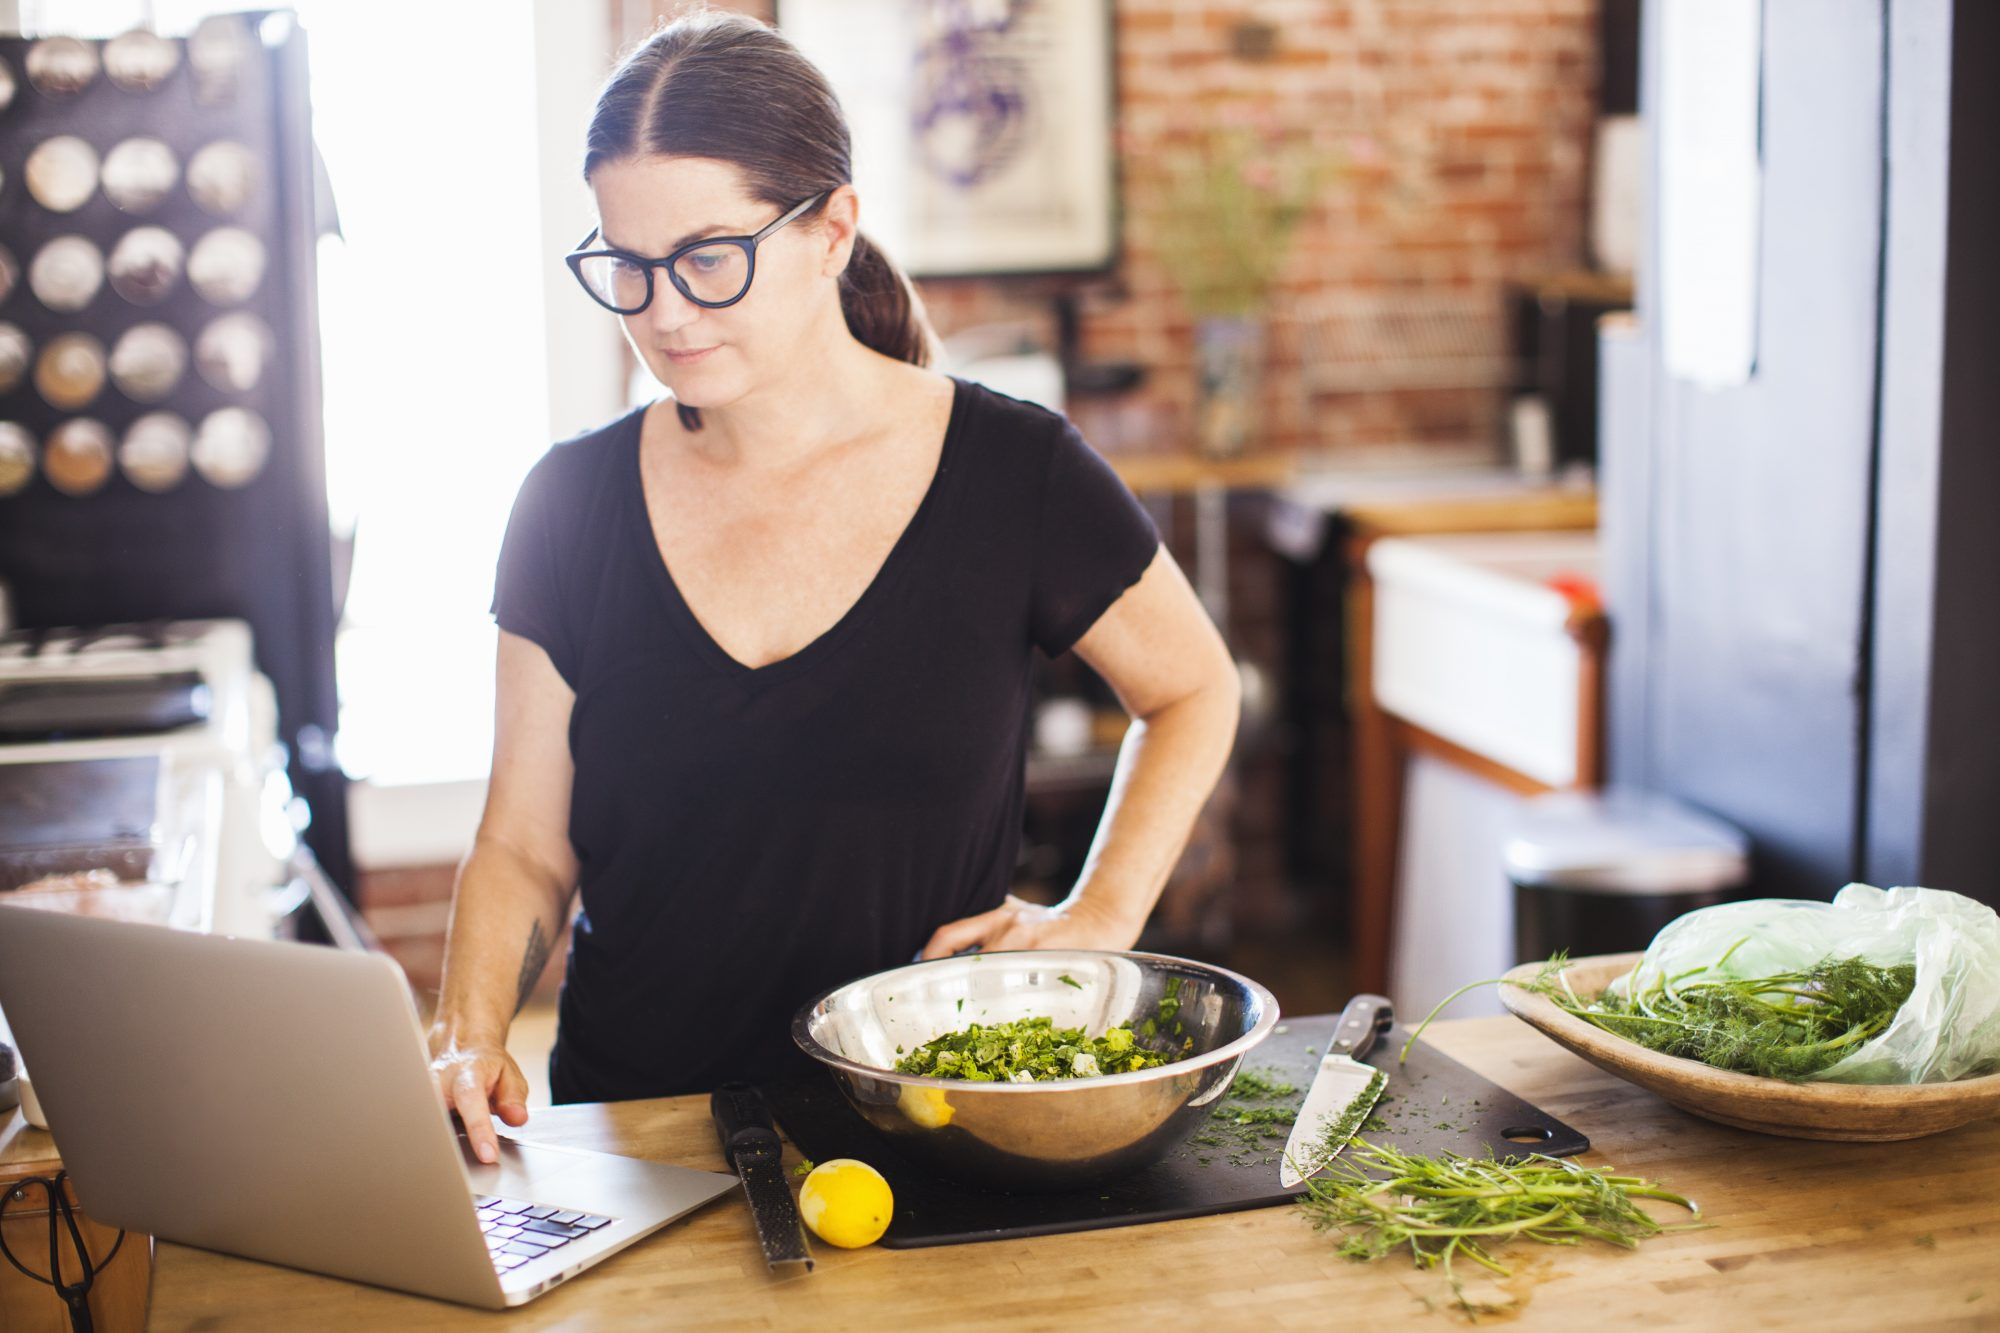 getty-woman-cooking-with-laptop-image